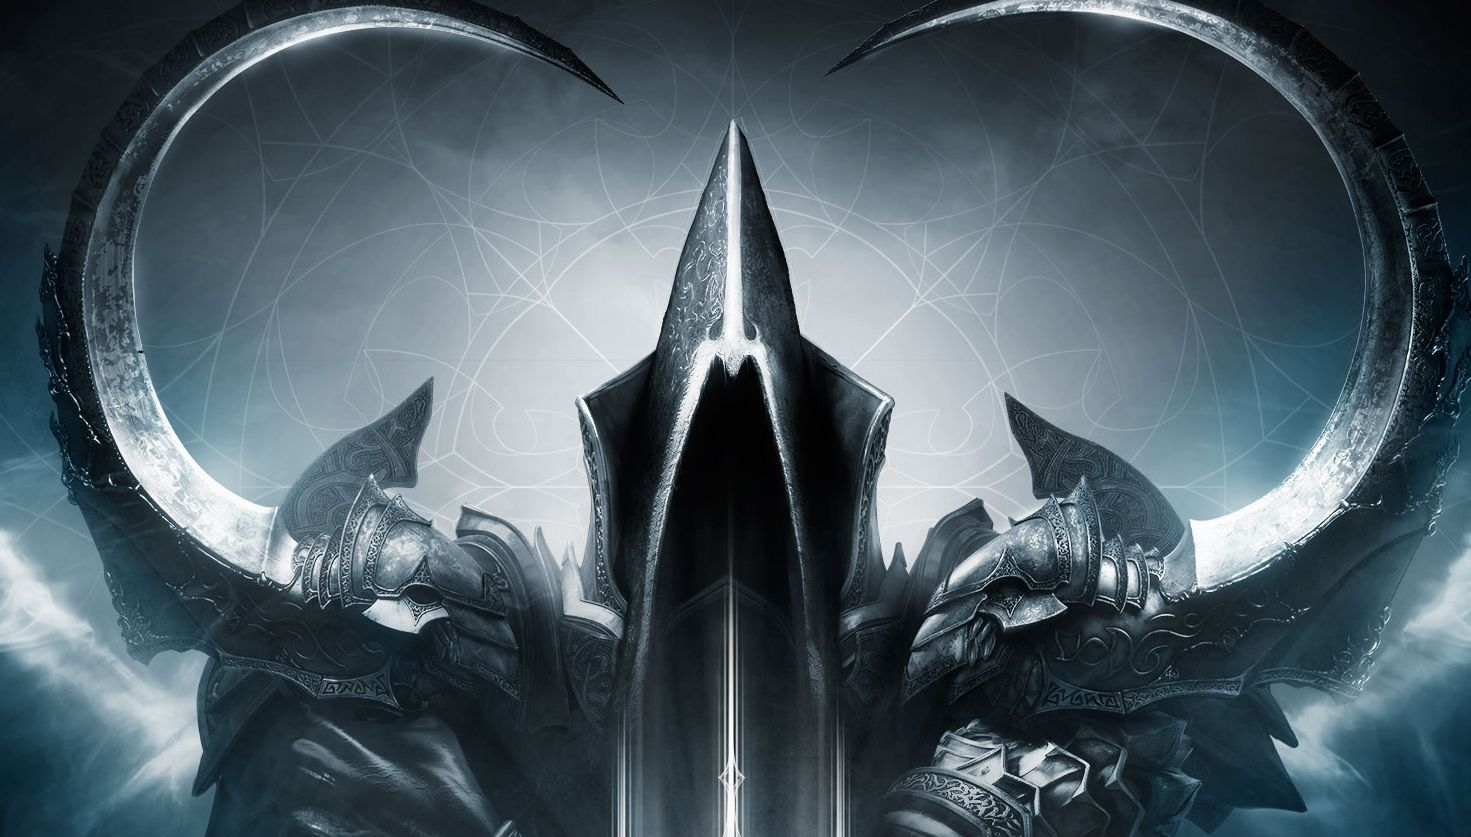 Diablo 3 Reaper of Souls mit Inhalten aus The Last of Us und Shadow of the Colossus